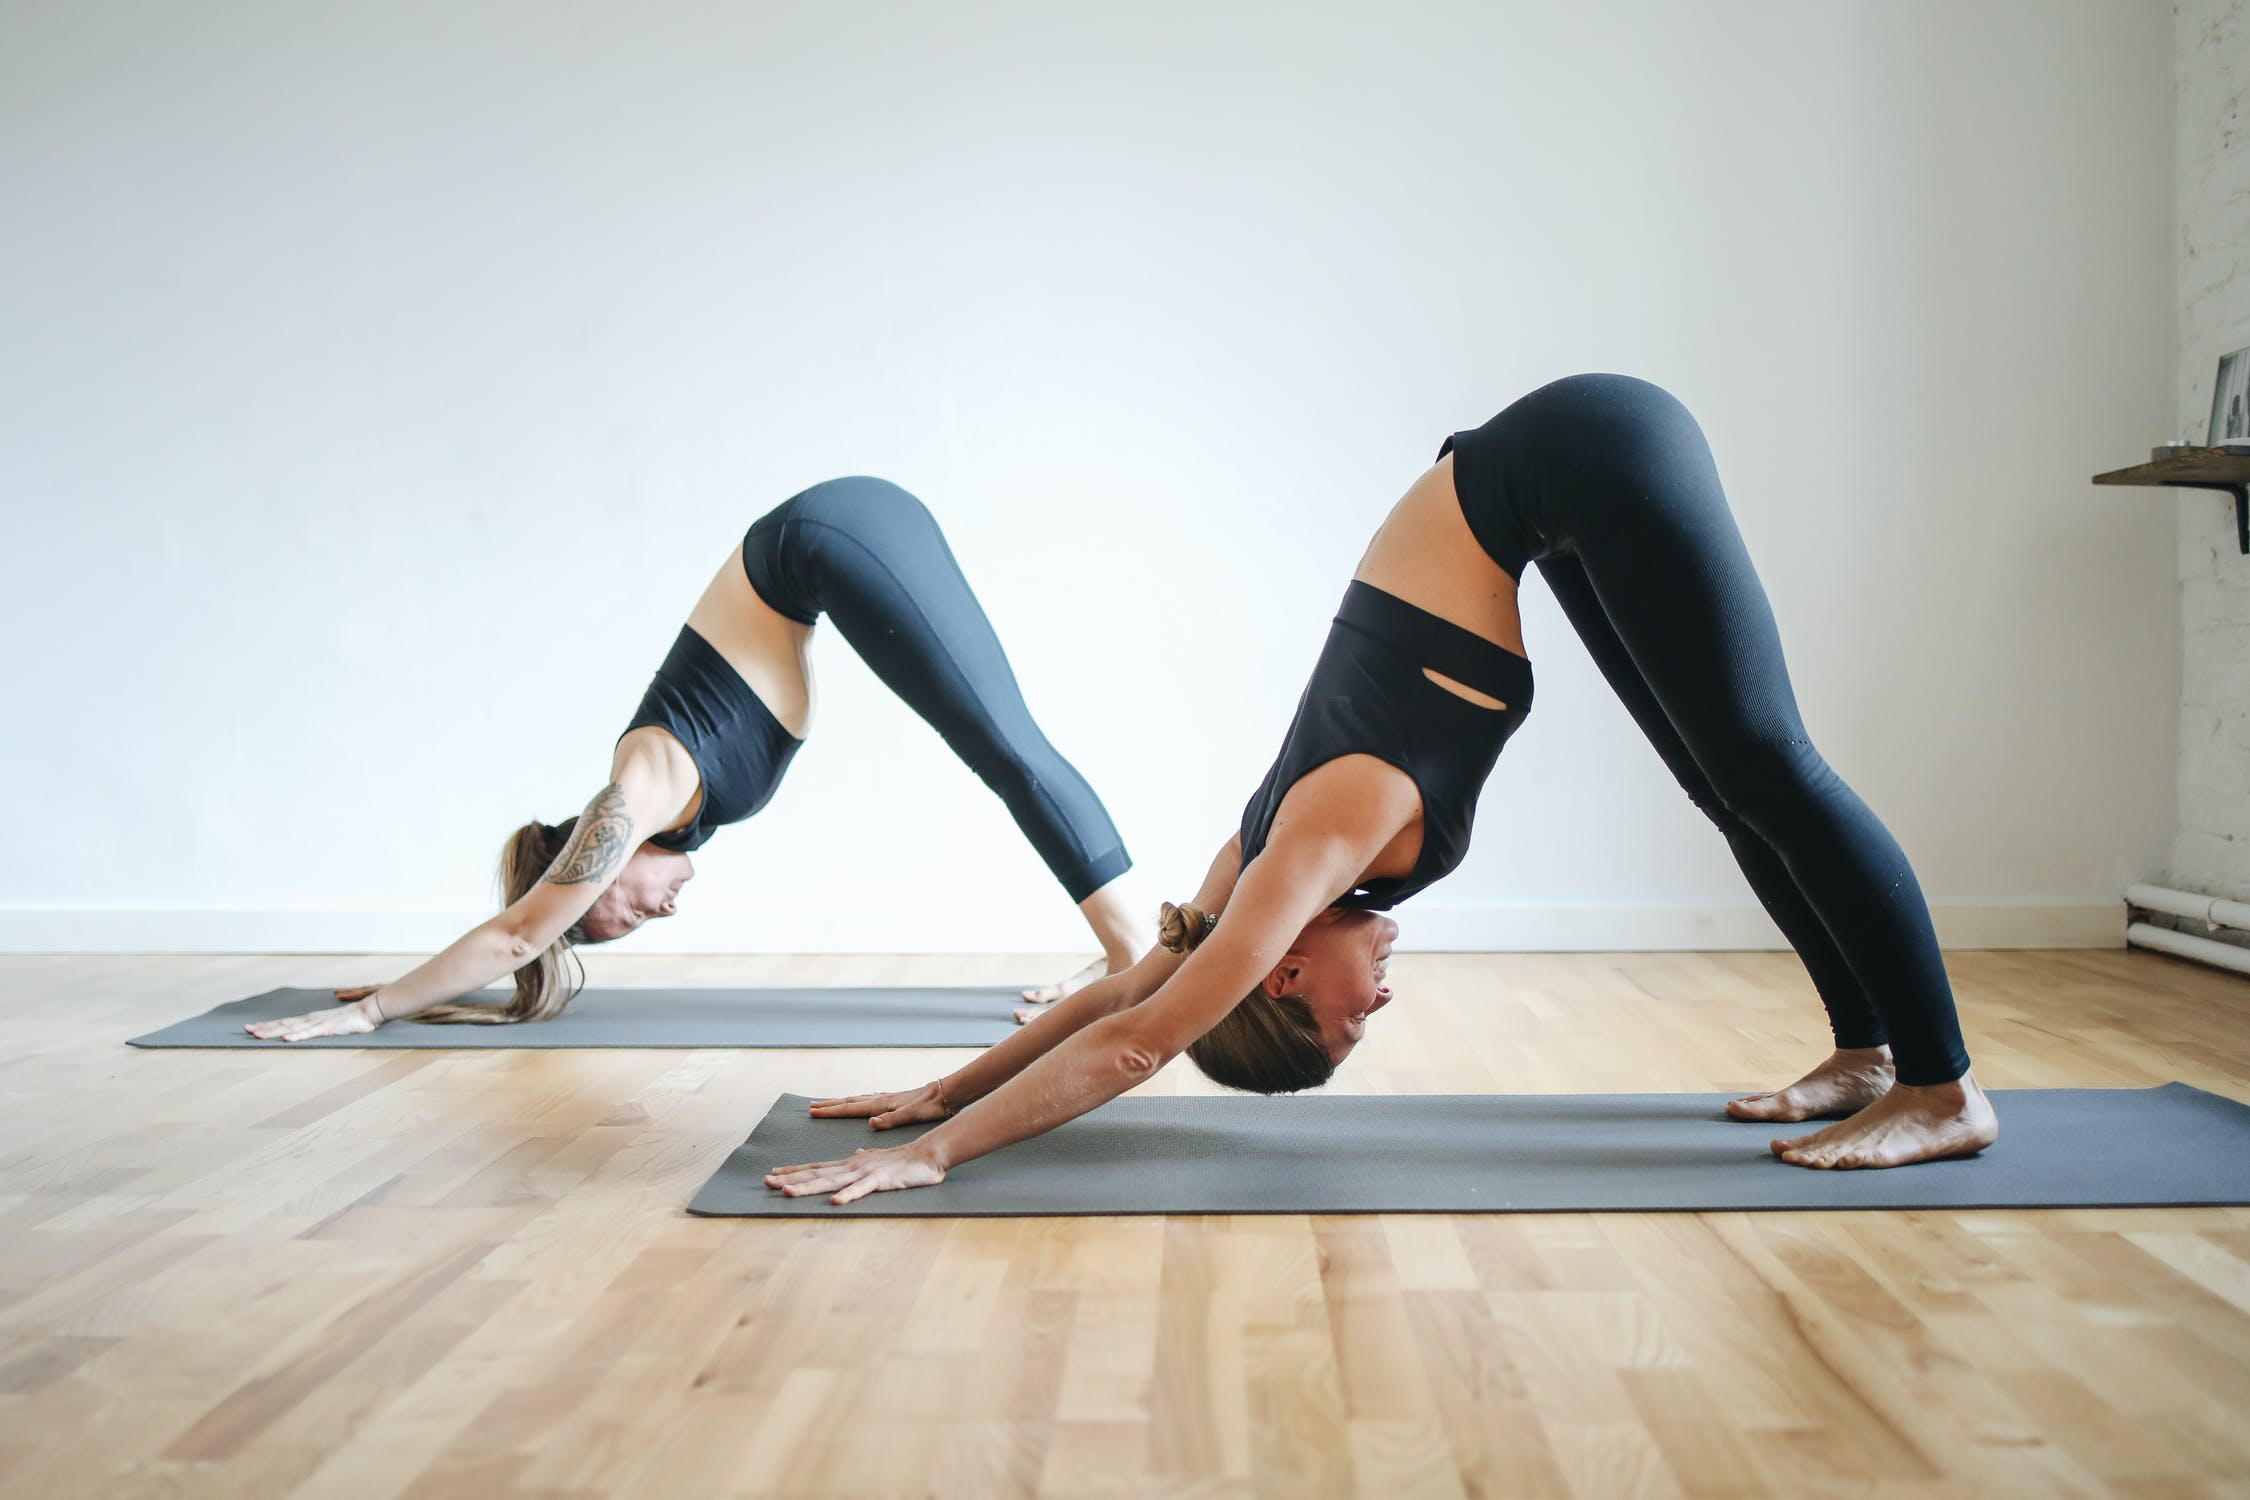 Yoga: All you Need to Know Before You Start